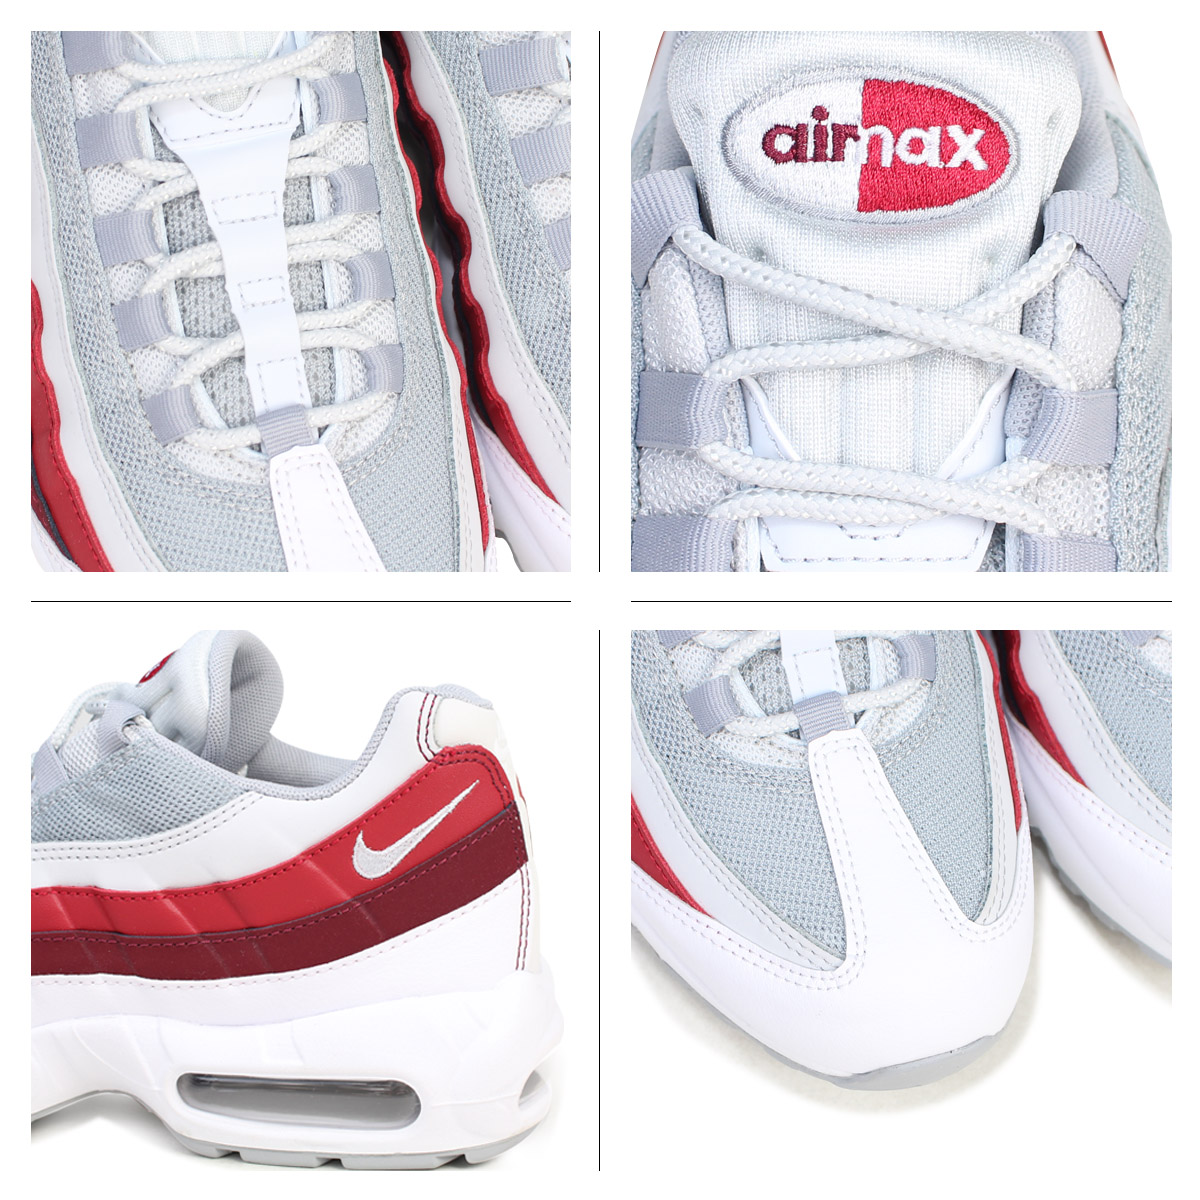 separation shoes 223a1 ee890 Nike NIKE Air Max 95 essential sneakers AIR MAX 95 ESSENTIAL 749,766-103  men s gray